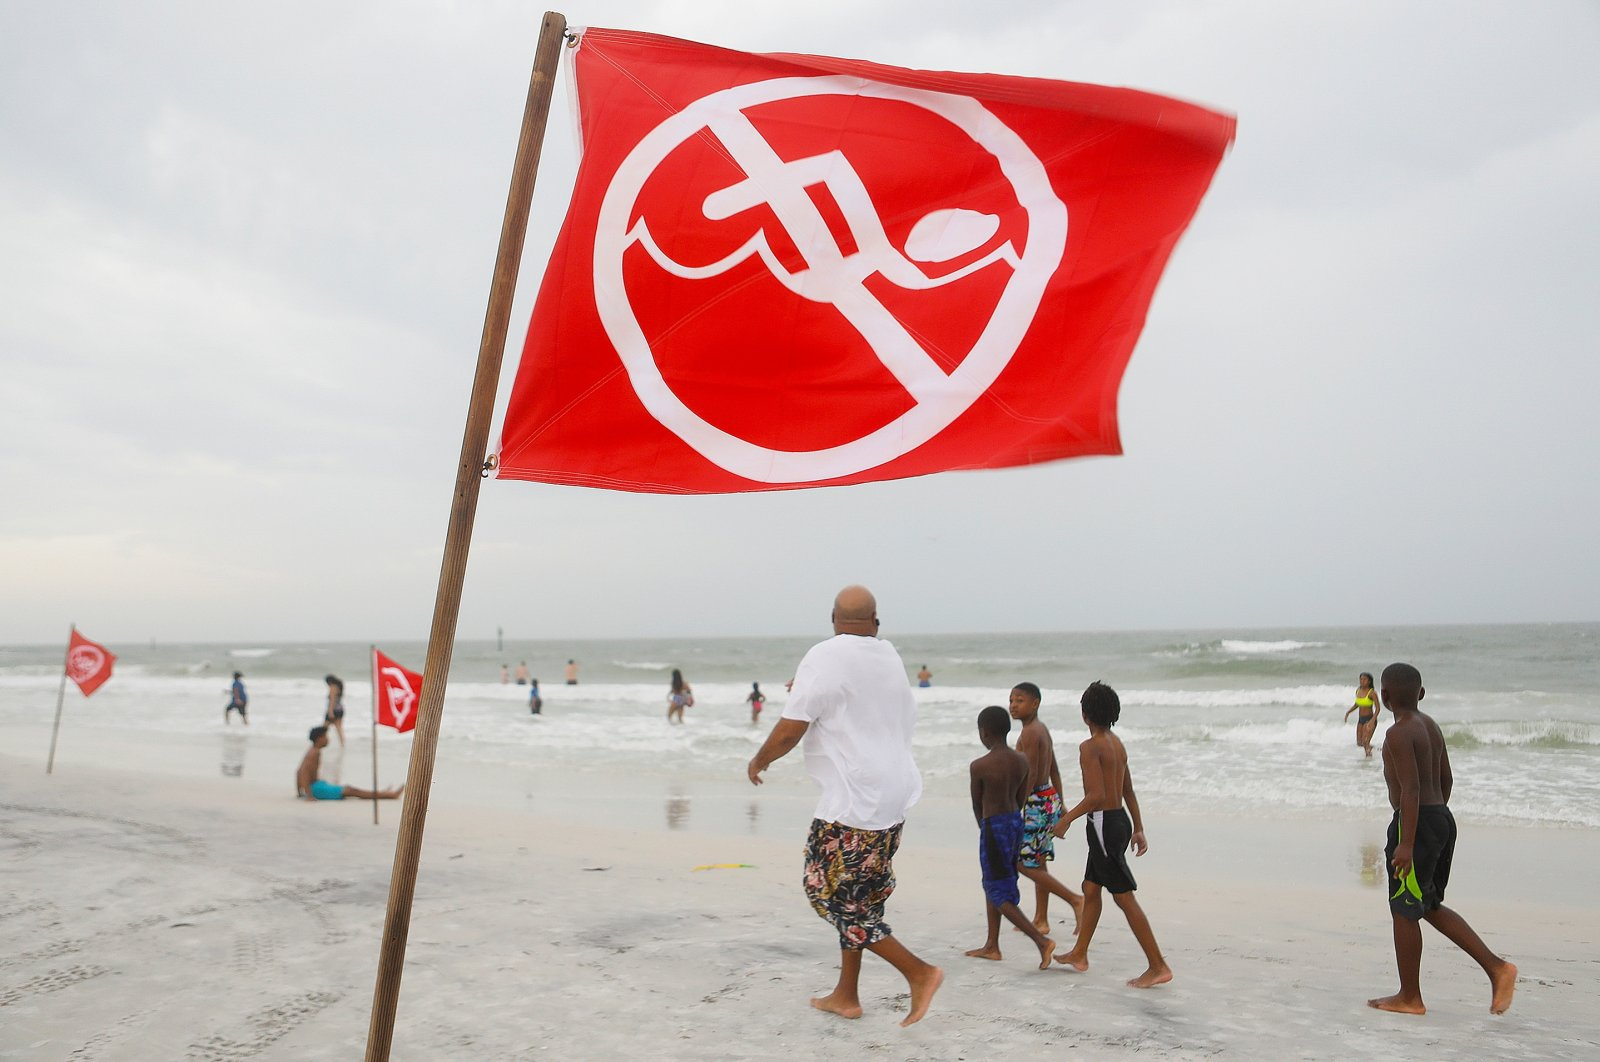 A strong current warning sign blows in the wind while beachgoers enjoy the Gulf of Mexico before a storm front approaches Clearwater Beach in Clearwater, Florida, U.S. March 18, 2021. (Reuters Photo)